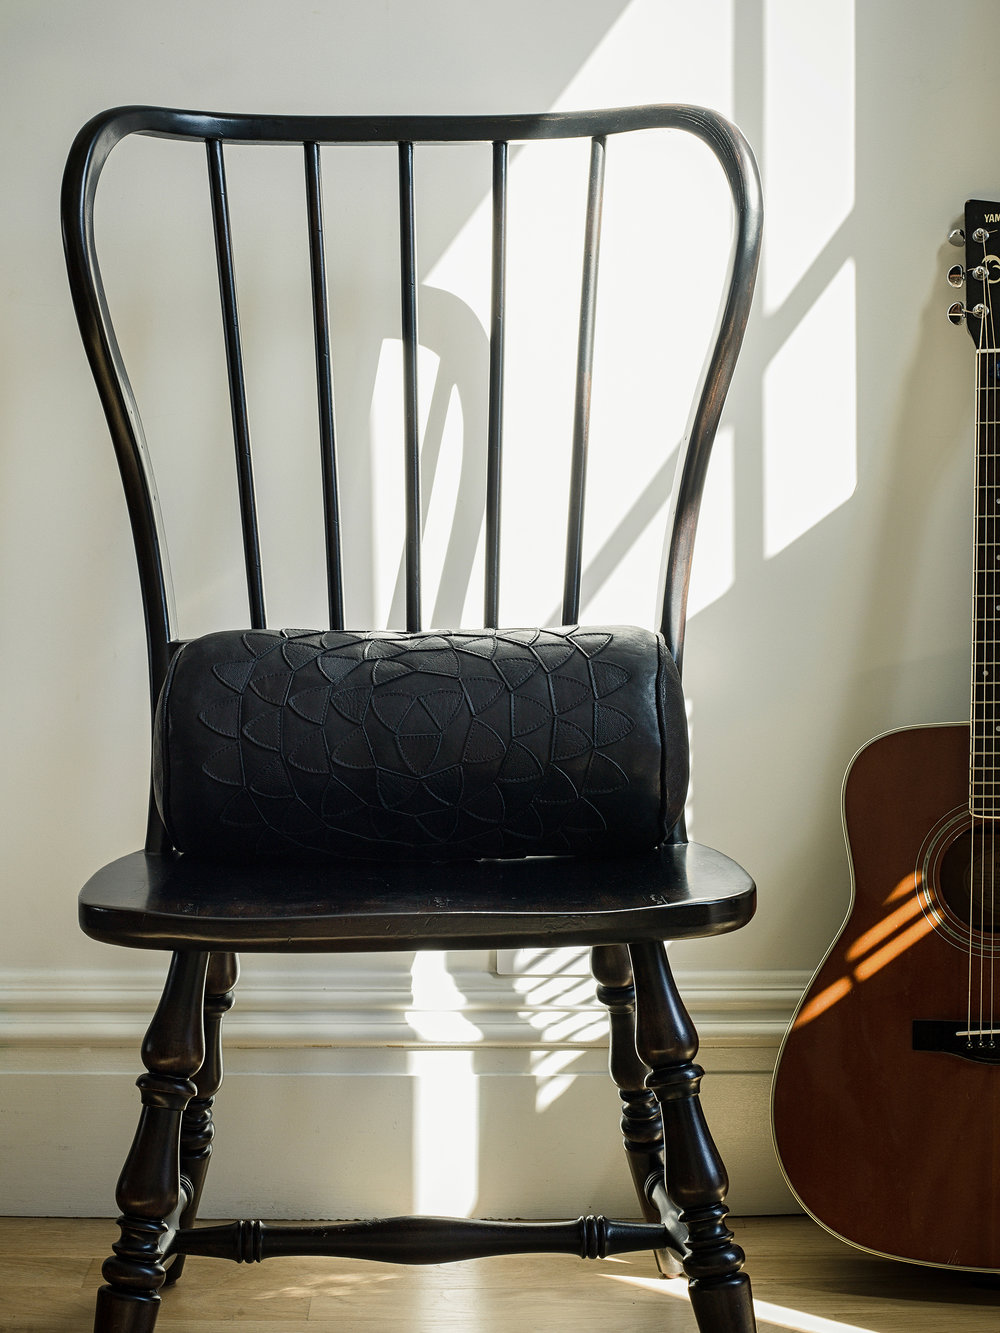 musician bachelor pad brooklyn park slope New York sacred geometry inspiration nicole watts styling interior design pillow decor fender guitar chair meditation mandala mindfulness lotus flower sunlight reflection Los Angeles Josephine Rozman jo living room home music inspired